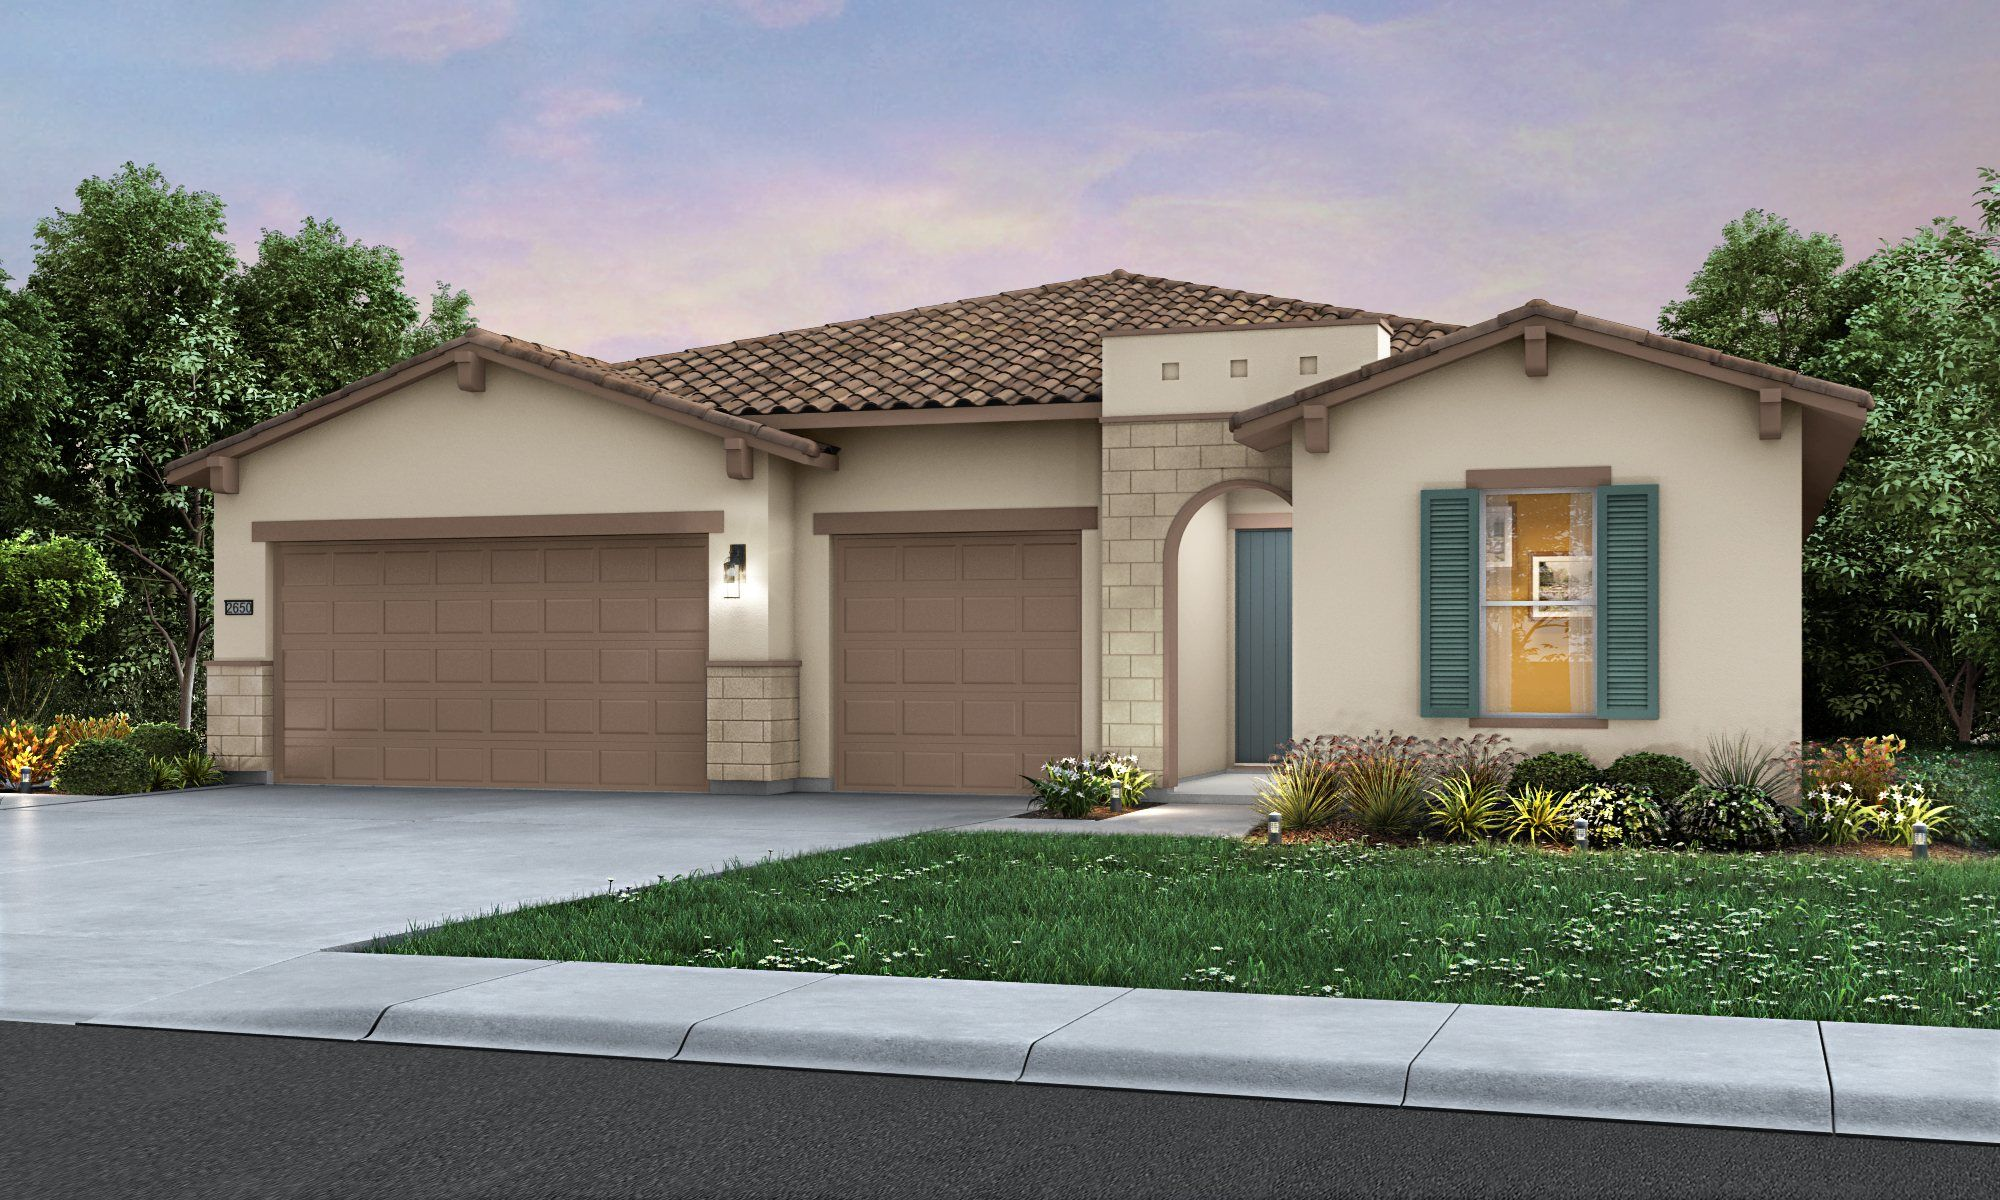 Single Family for Active at Heritage Solaire - Eclipse - Residence 2650 4073 Afterlight Lane Roseville, California 95747 United States